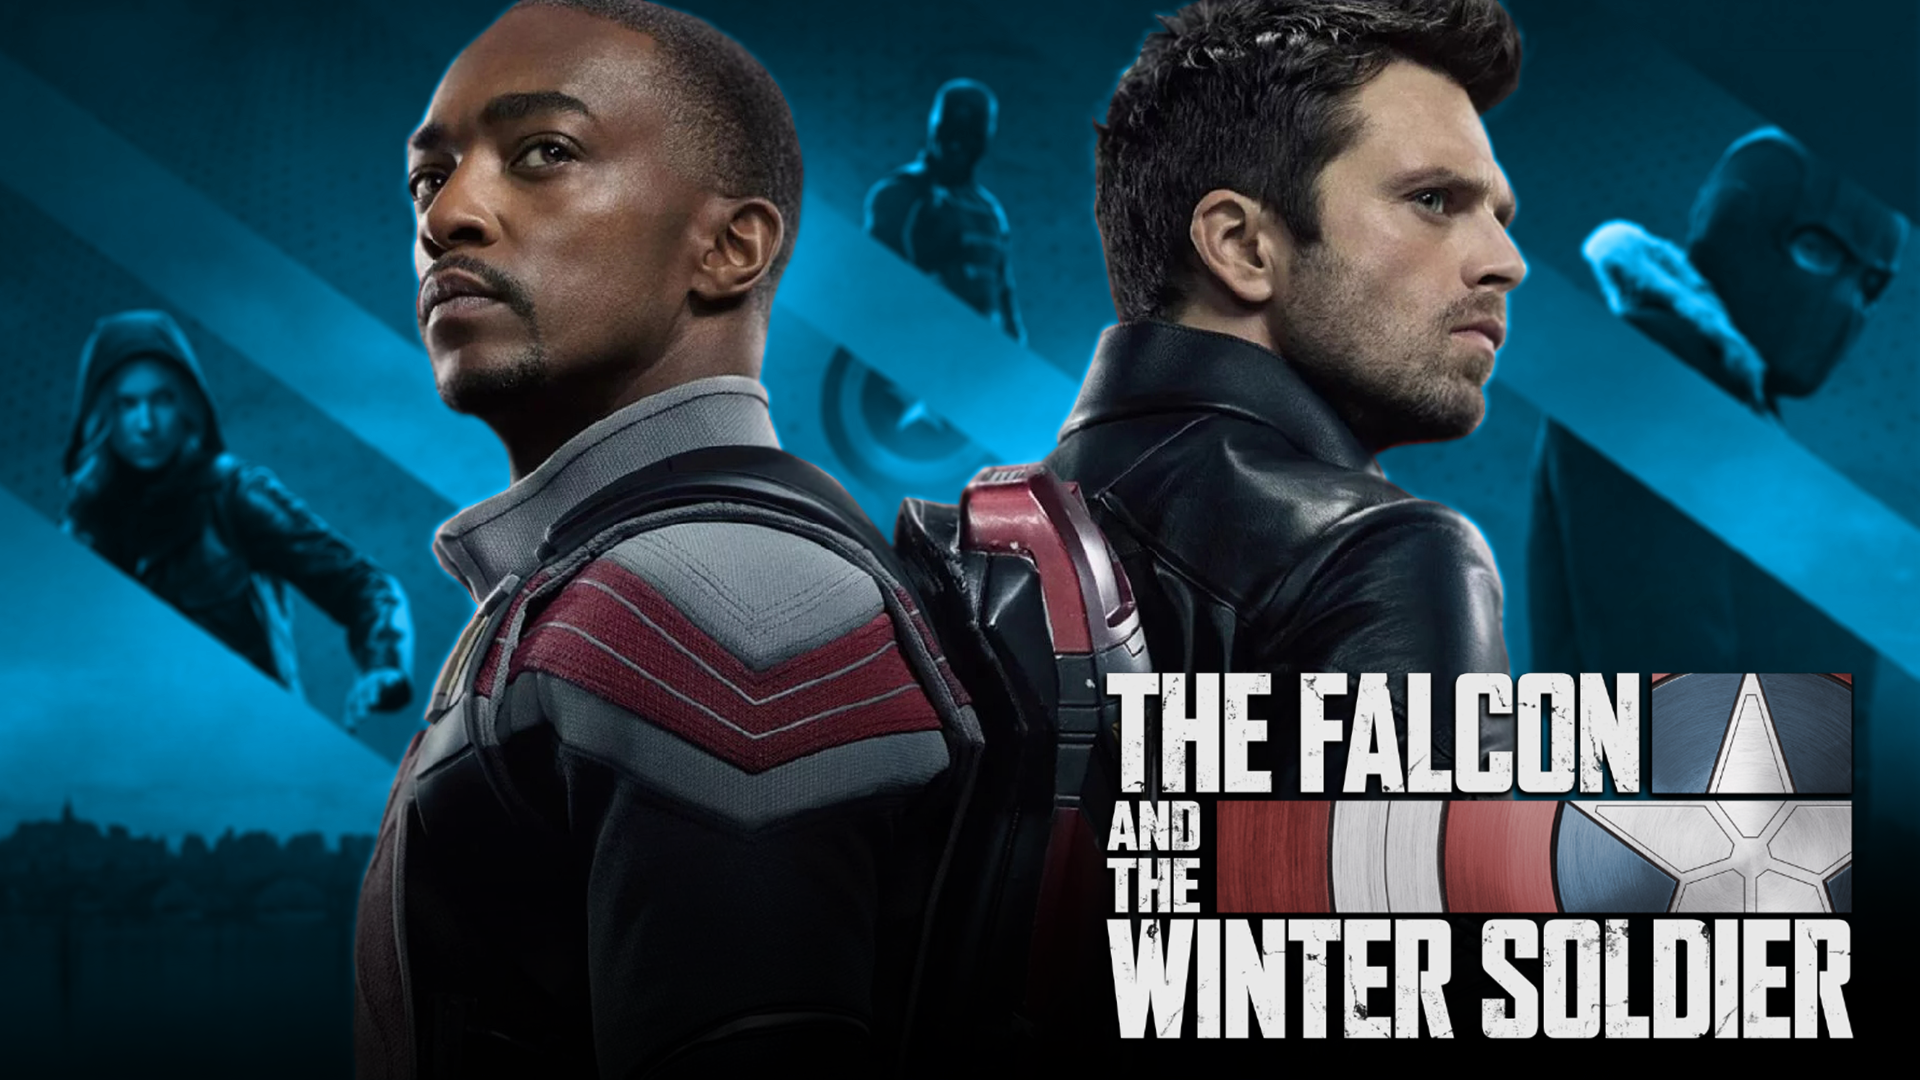 A new Captain America is crowned in Falcon & the Winter Soldier